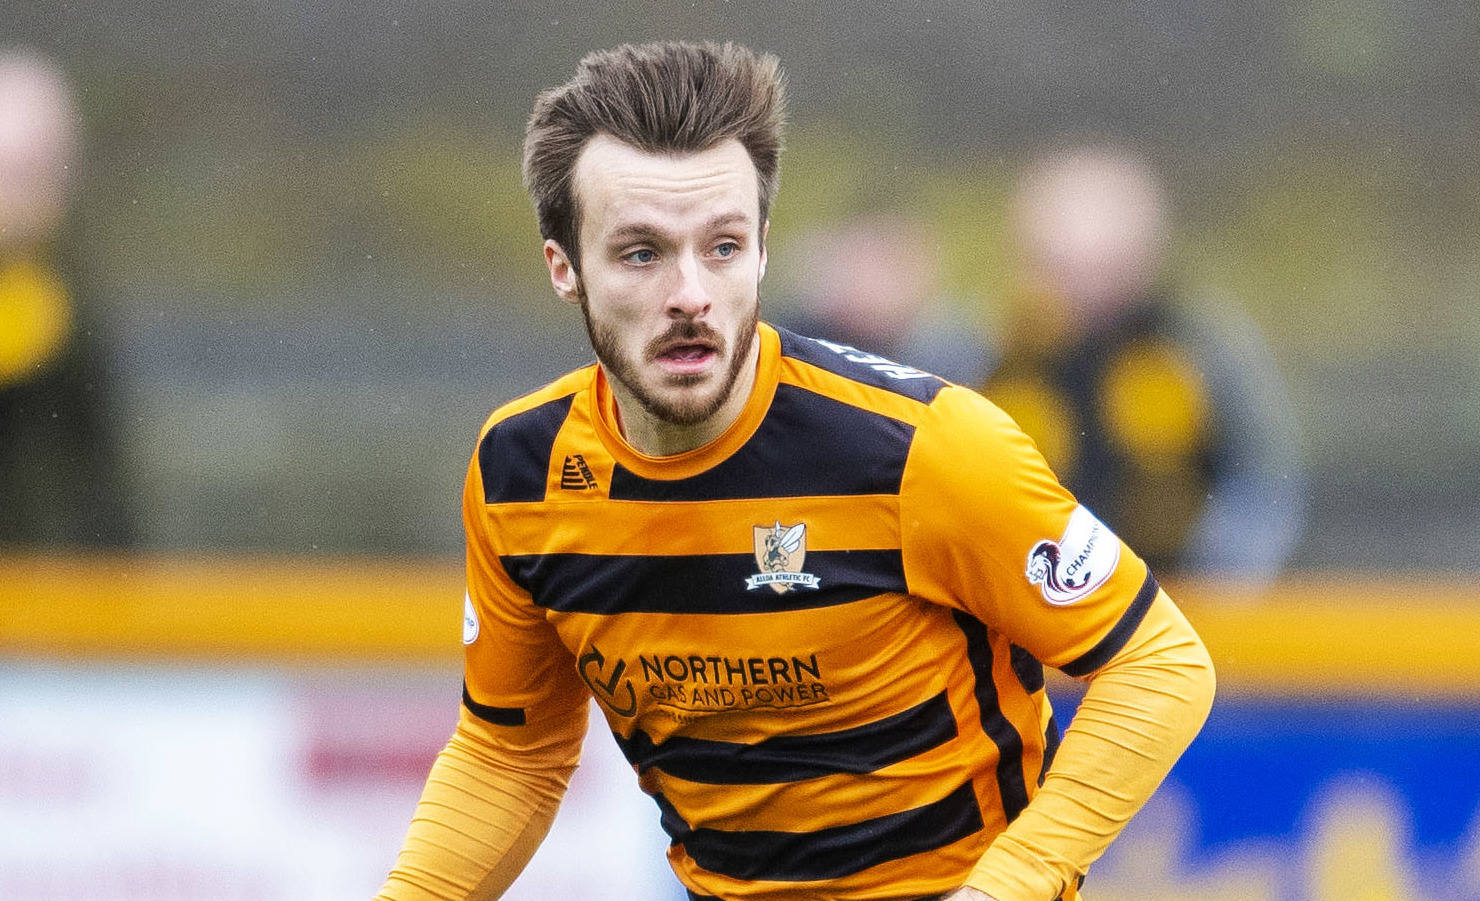 Alloa midfielder reflects on his side's 3-1 defeat to Hearts